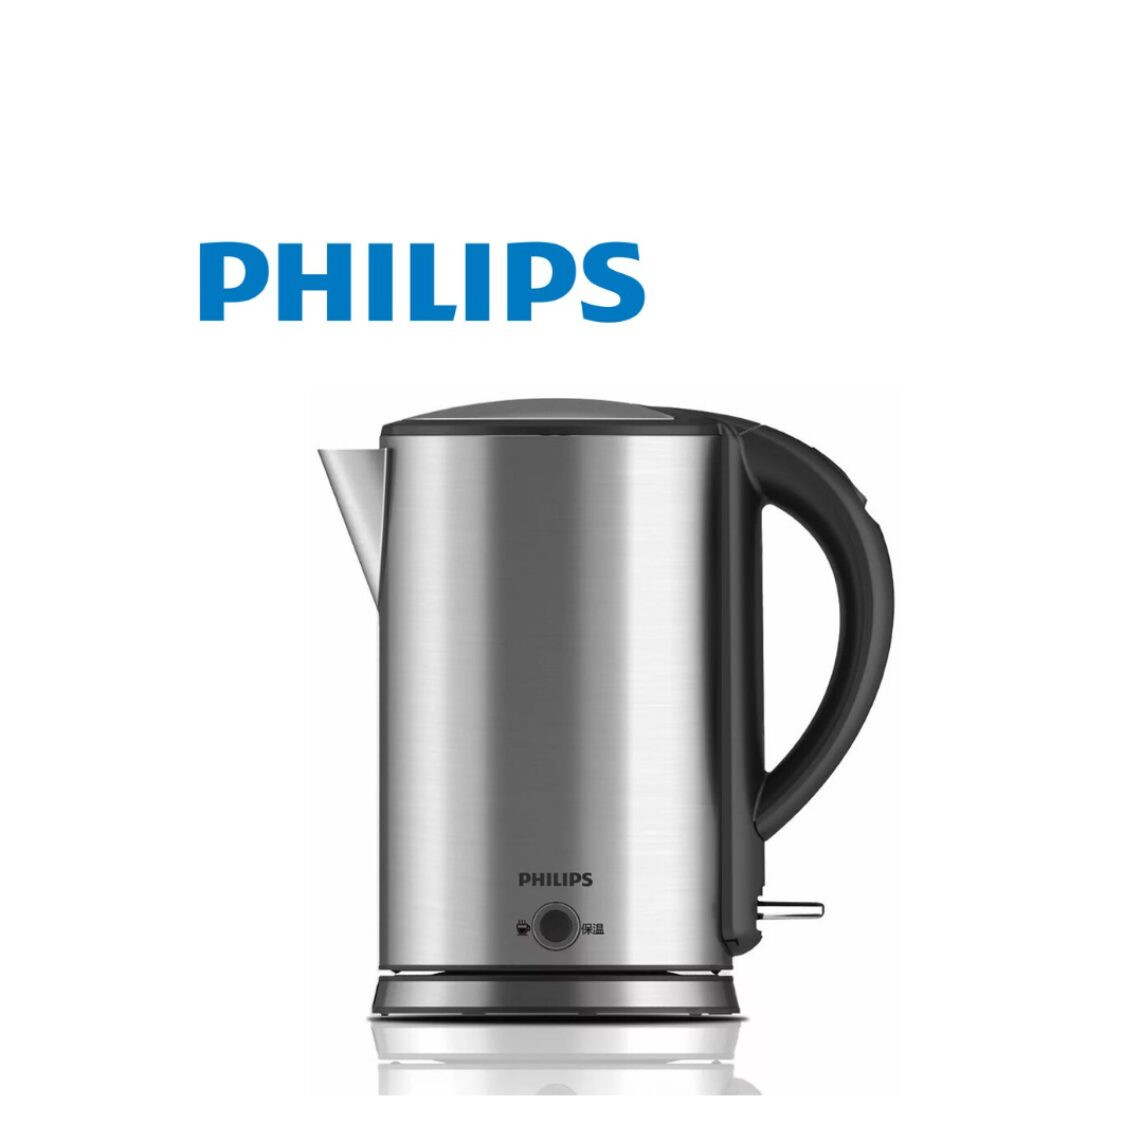 Philips 17L 1600W Stainless Steel Kettle With Keep Warm Function HD931603